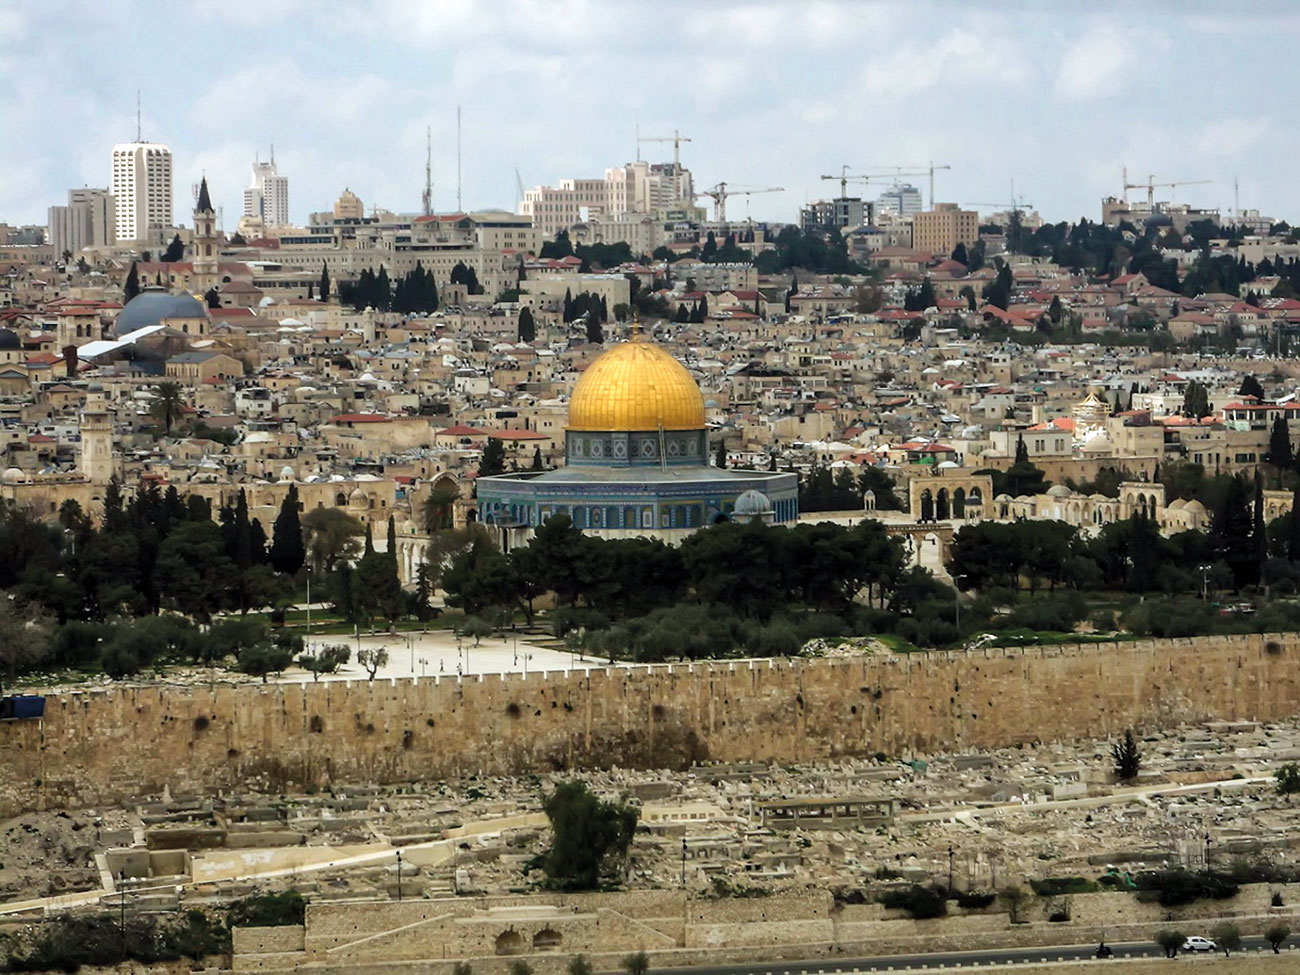 The developing friendship with Israel has opened up an affluent market for investors and tourists and the region.